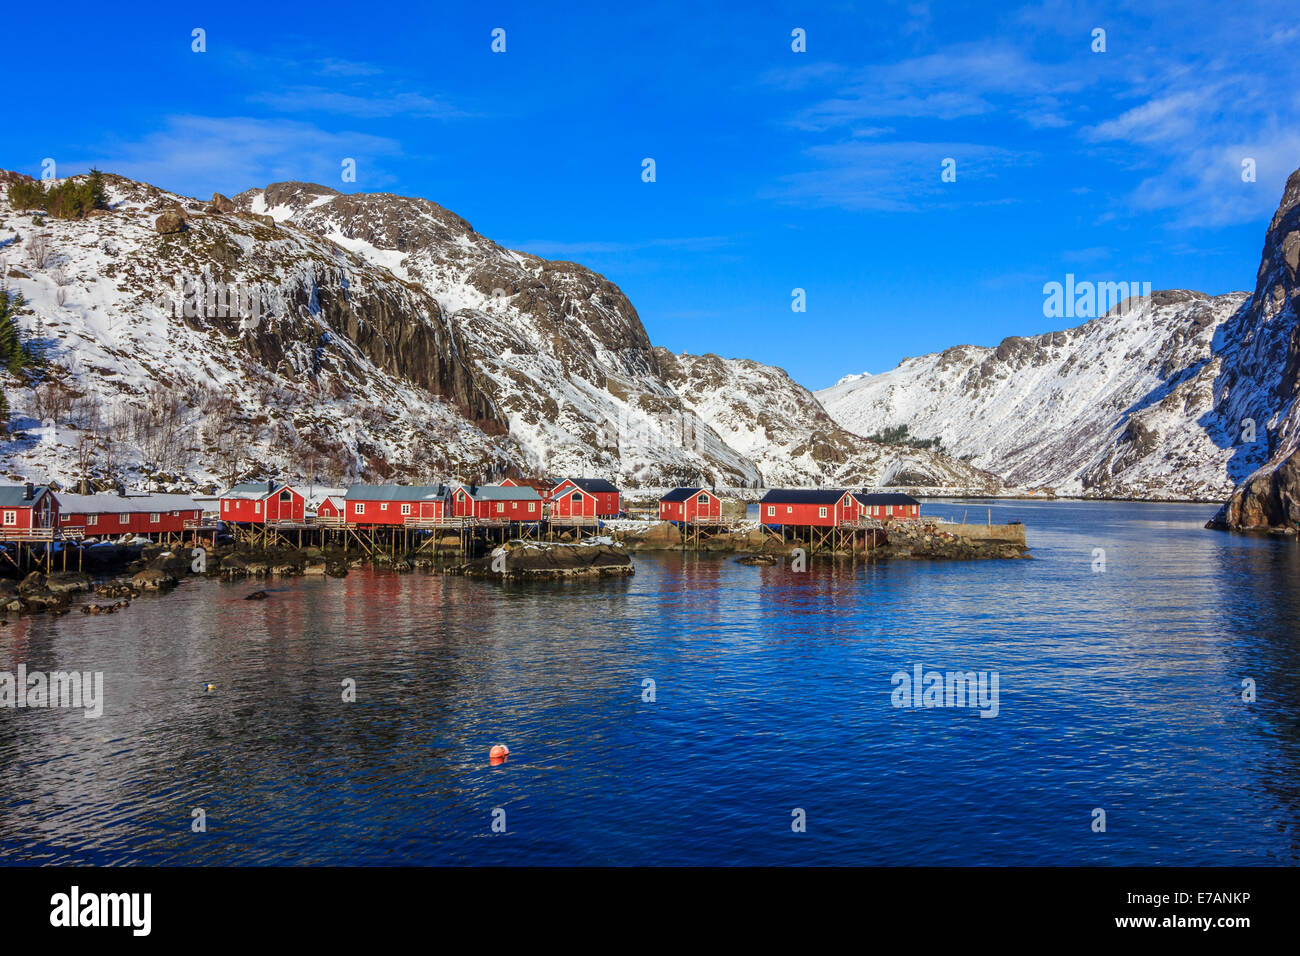 Fishing village in the Lofoten Islands - Stock Image